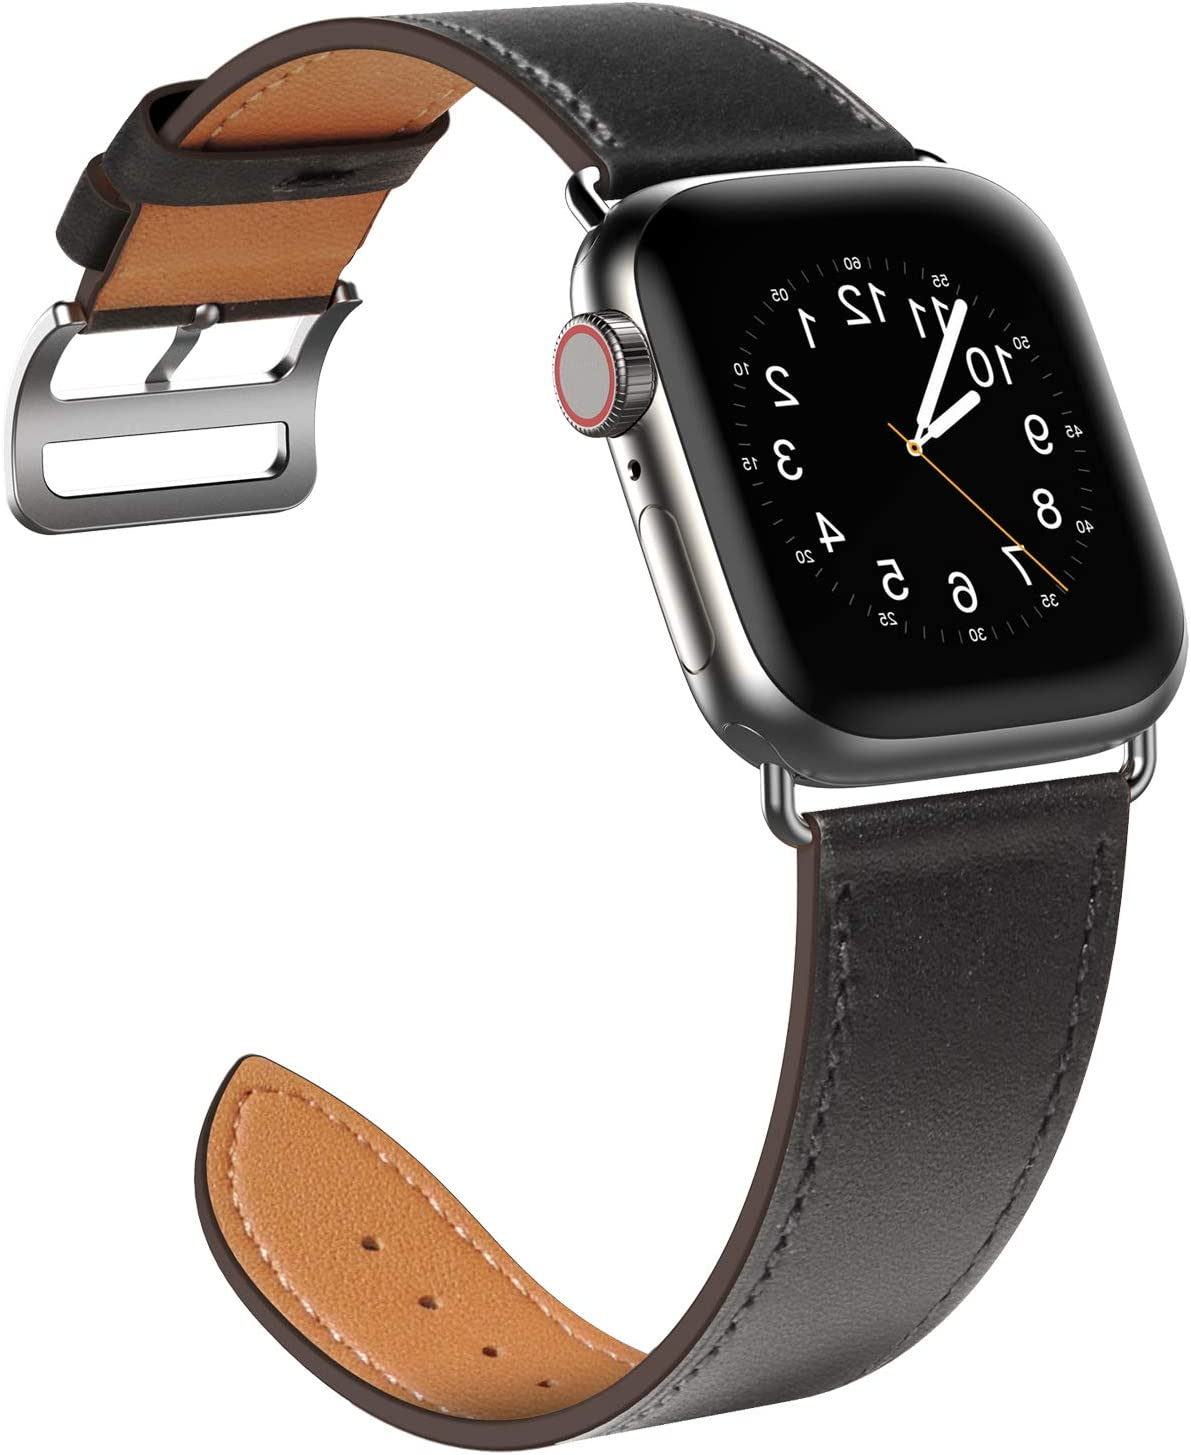 SAWE Compatible with Apple Watch Band 38mm 40mm, Genuine Leather Band Replacement Strap Compatible with Apple Watch Series 6 5 4 (40mm) Series 3 2 1 (38mm) SE / Sport and Edition (Black)